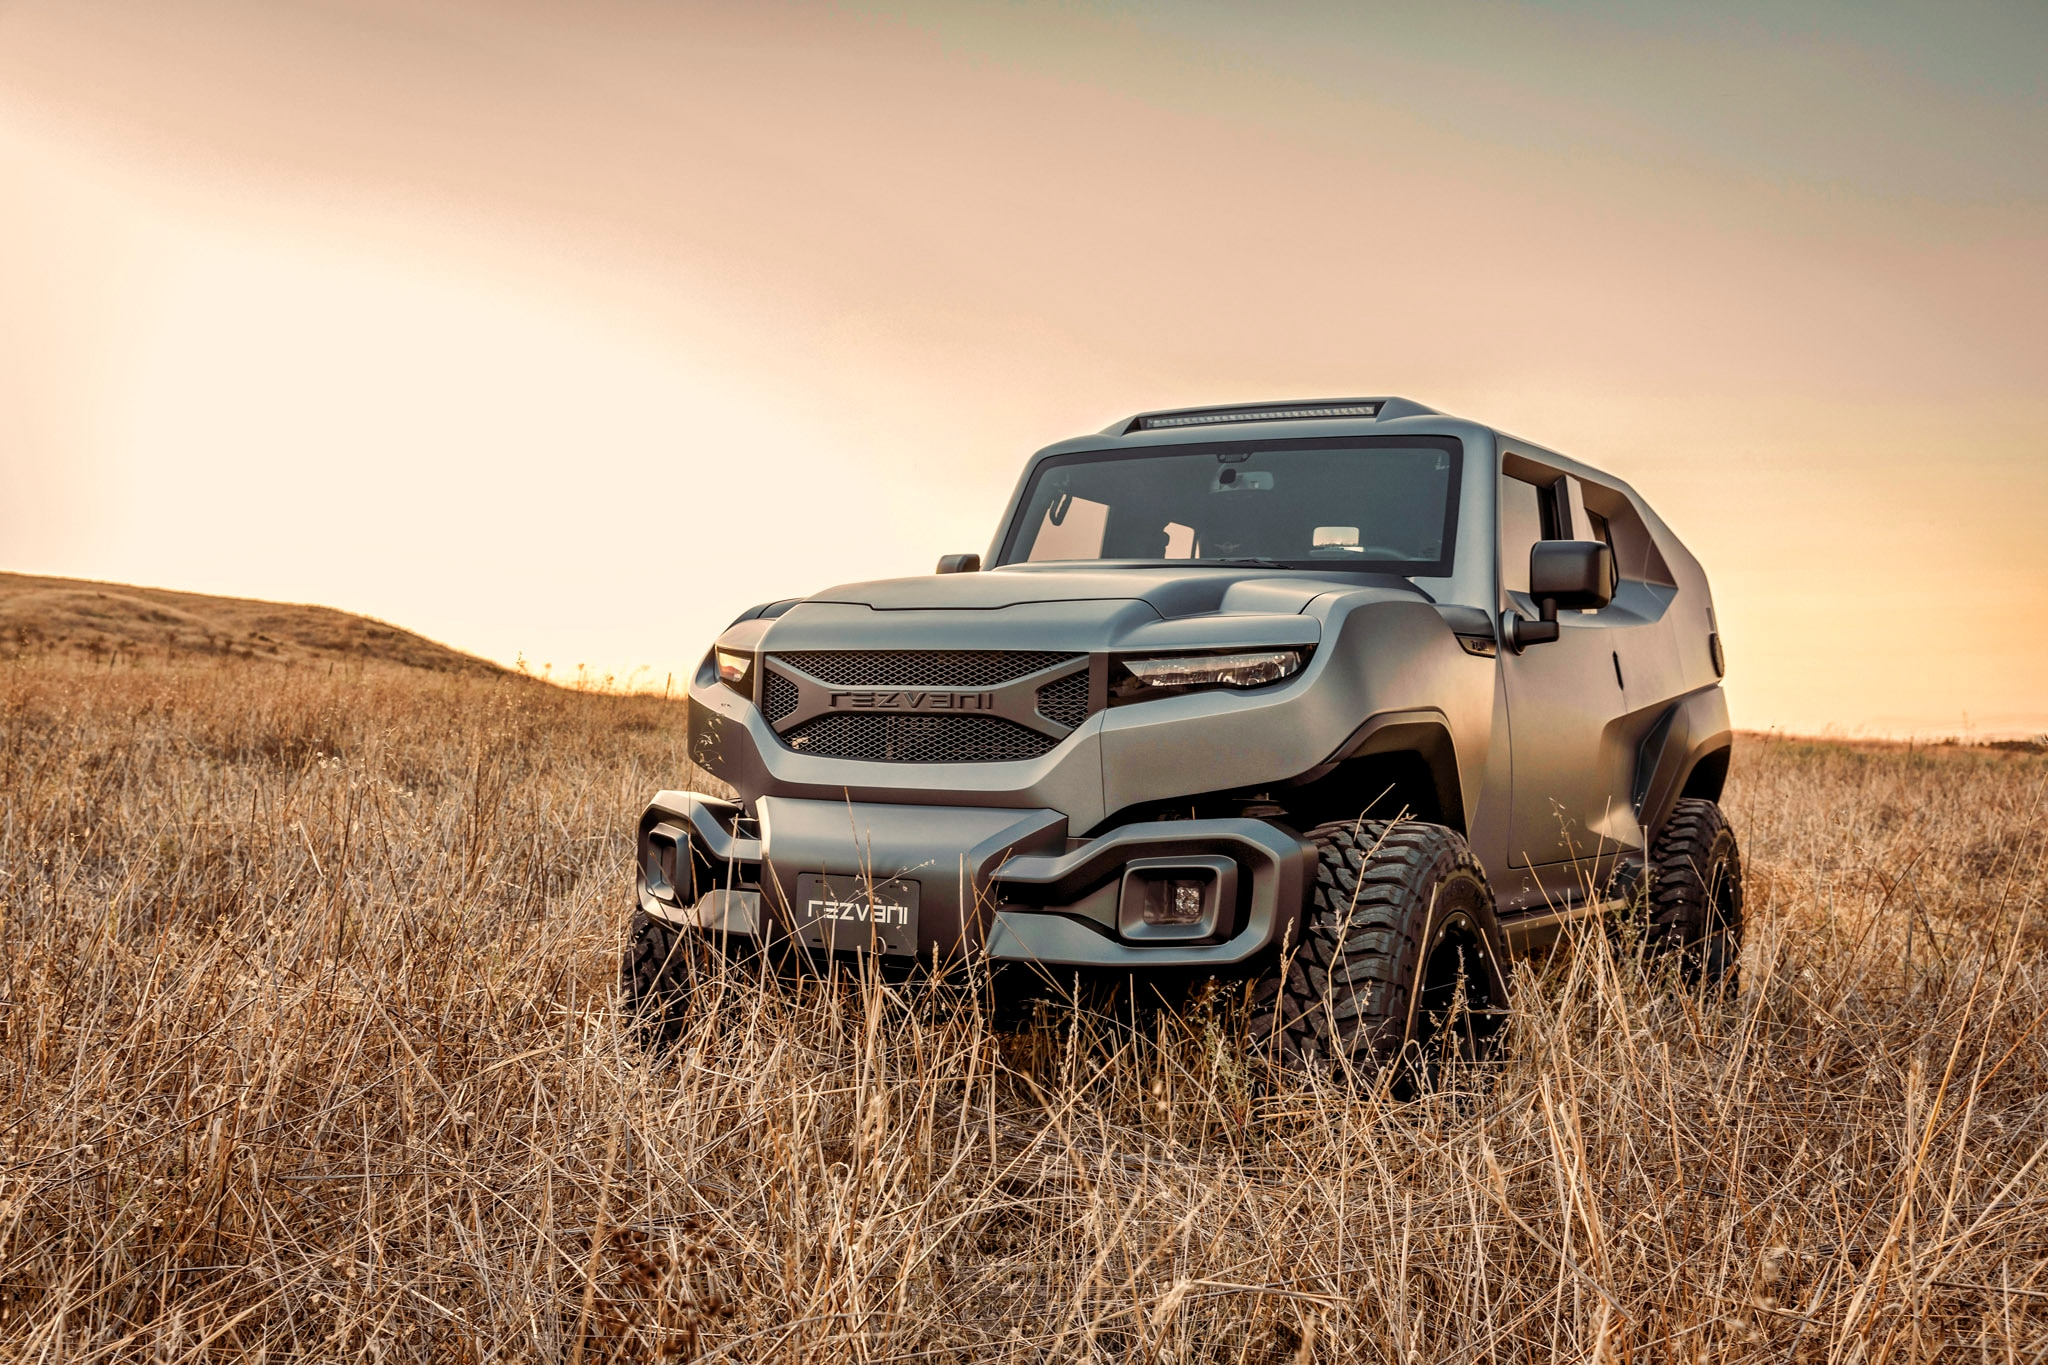 The Rezvani Tank: An Off-Road SUV Ready to Stop Bullets